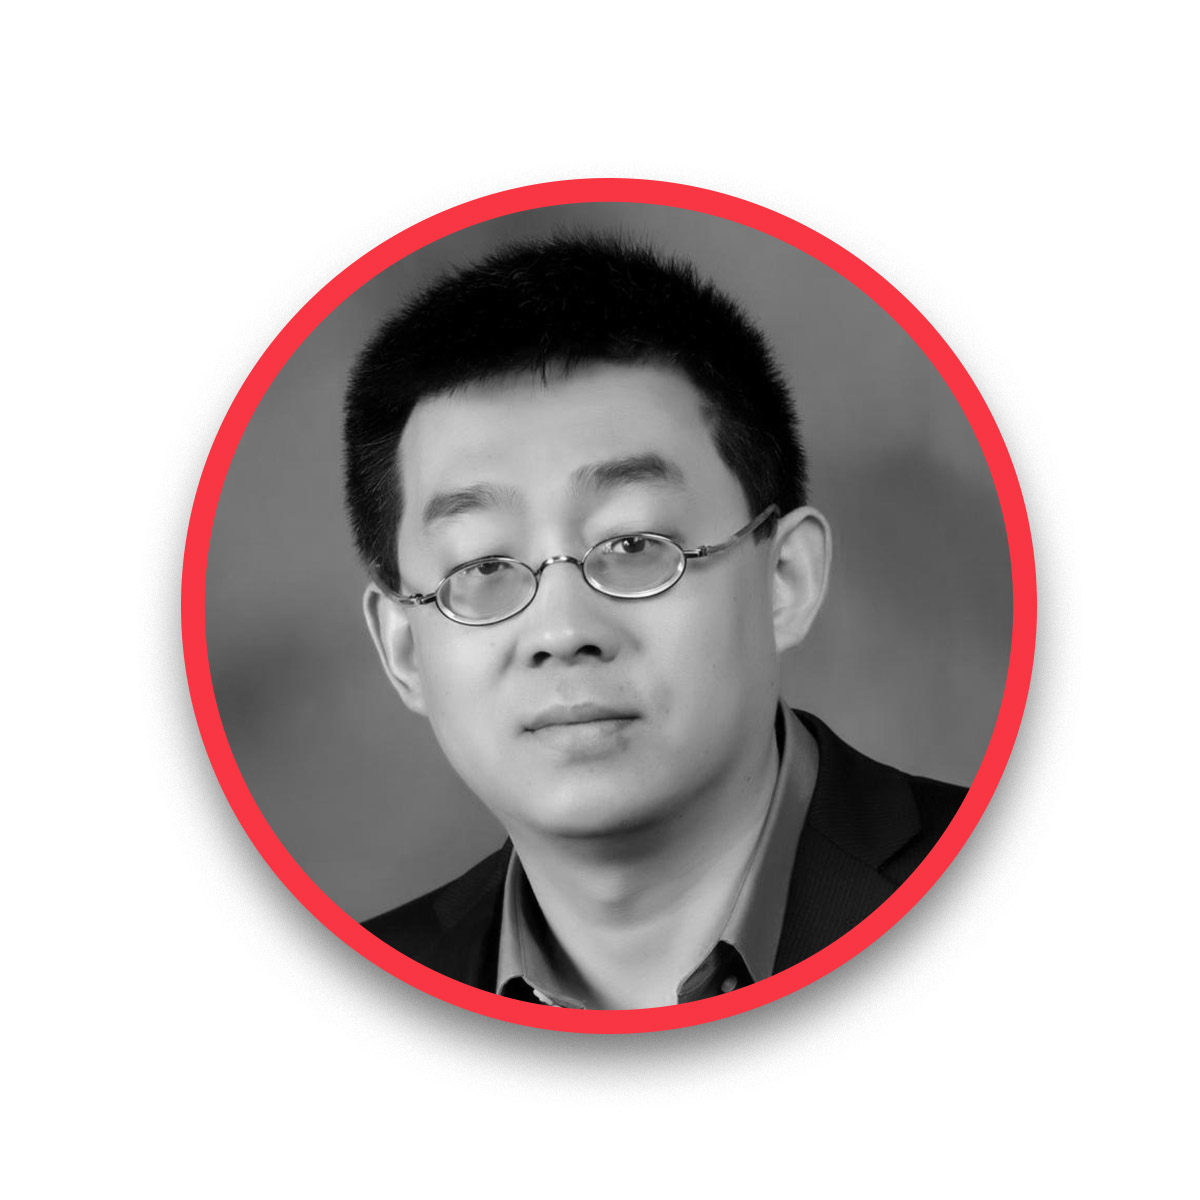 Shan Guan -  CTO  Prior to joining CWD, Saun was a Principle Consultant at DNV GL, where he worked on sensors and risk modeling. Dr. Guan obtained a Ph.D. in Mechanical Engineering in 2004 and a Masters in Electrical Engineering in 2003, both from the University of Minnesota. He obtained a M.S. and B.S. in Materials Science from BeiHang University. Dr. Guan has published over 50 papers and been awarded more than 10 patents.